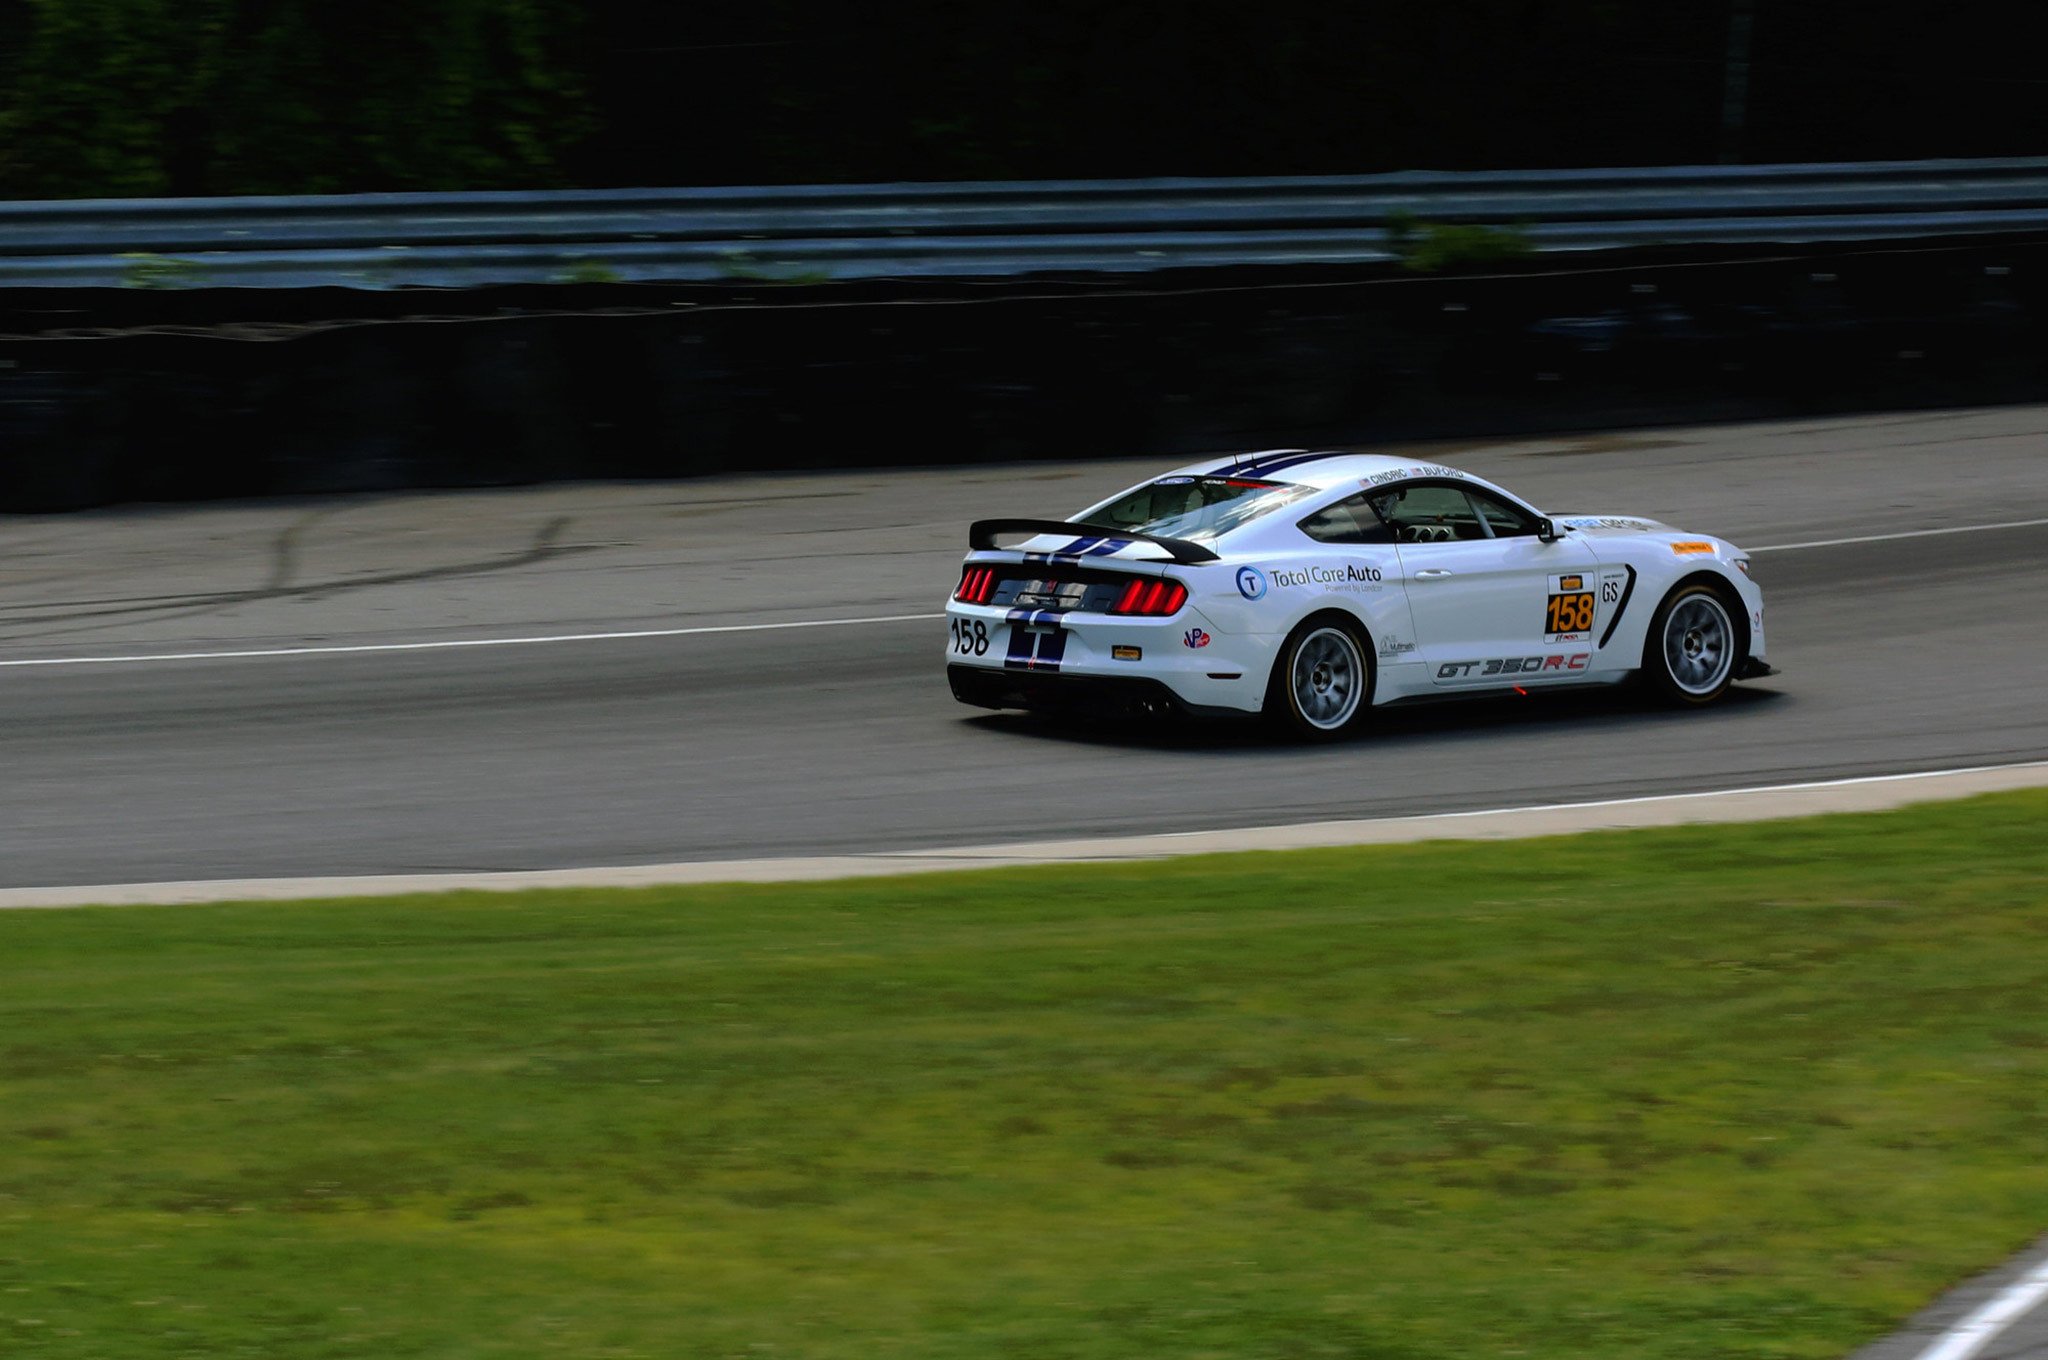 Shelby Gt350r C Takes Second Win At Lime Rock 12